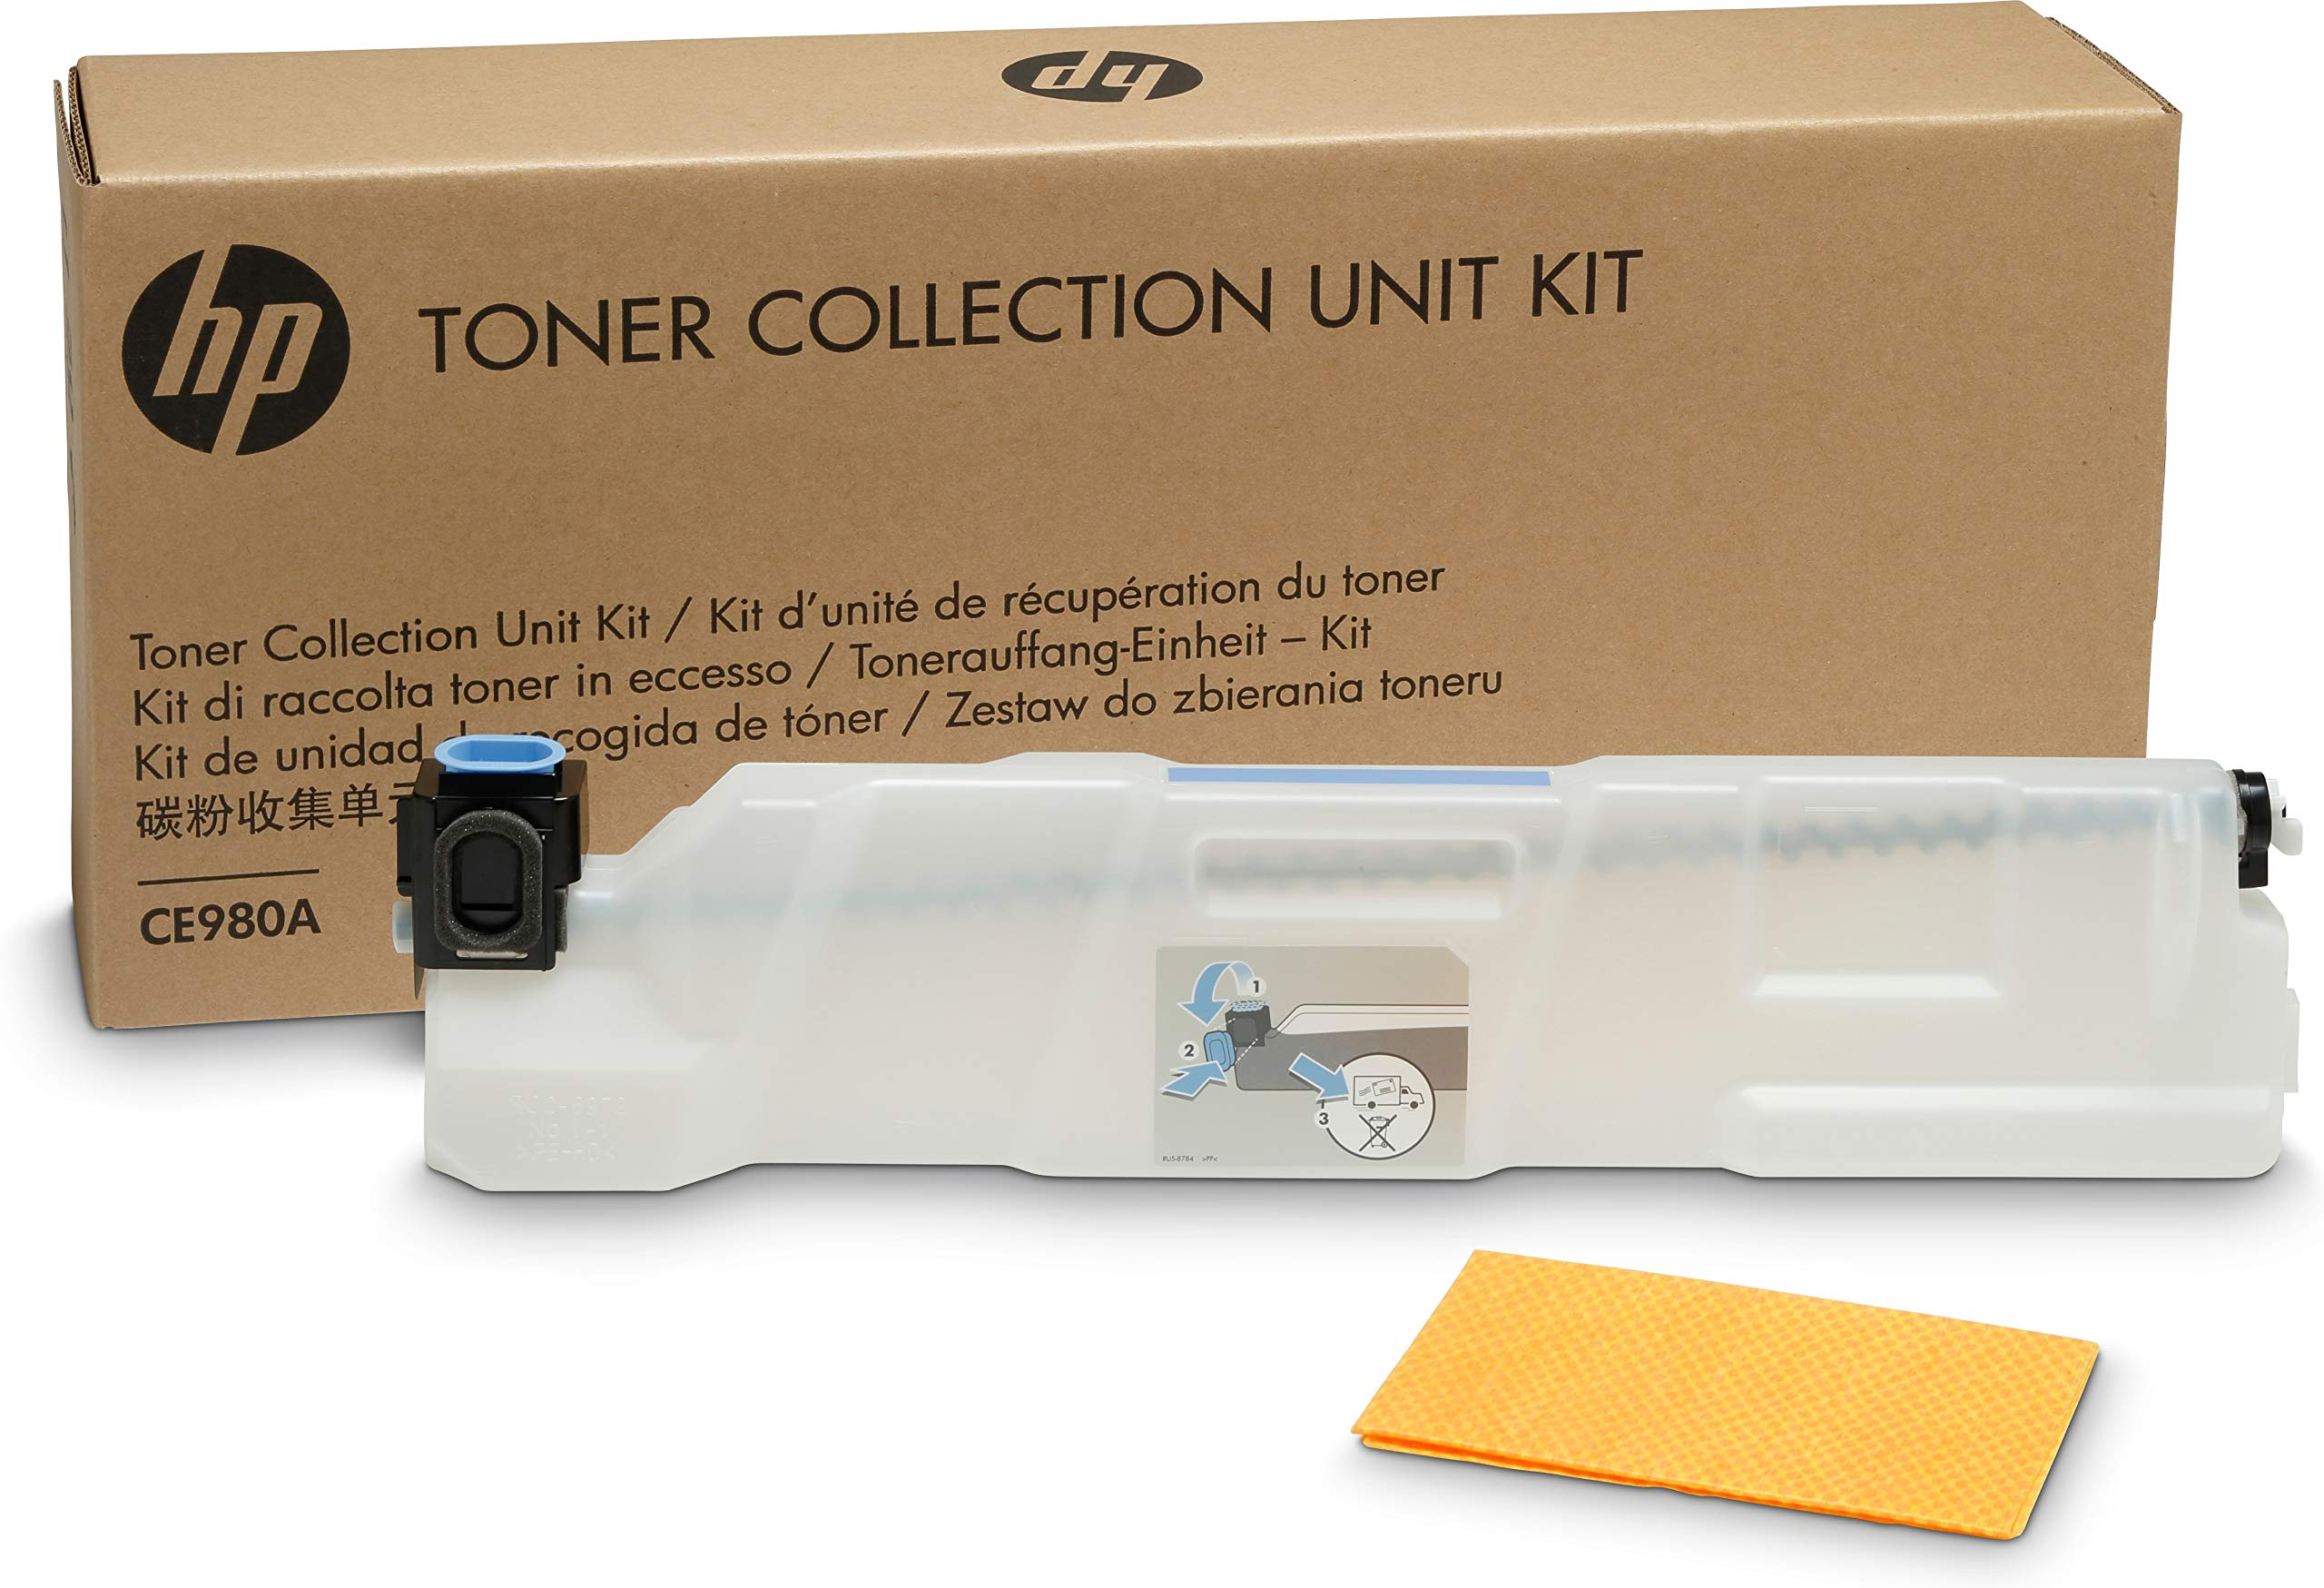 Toner Original Hp Ce980a Collection Para Color Laserjet Cp5525 M750 M775